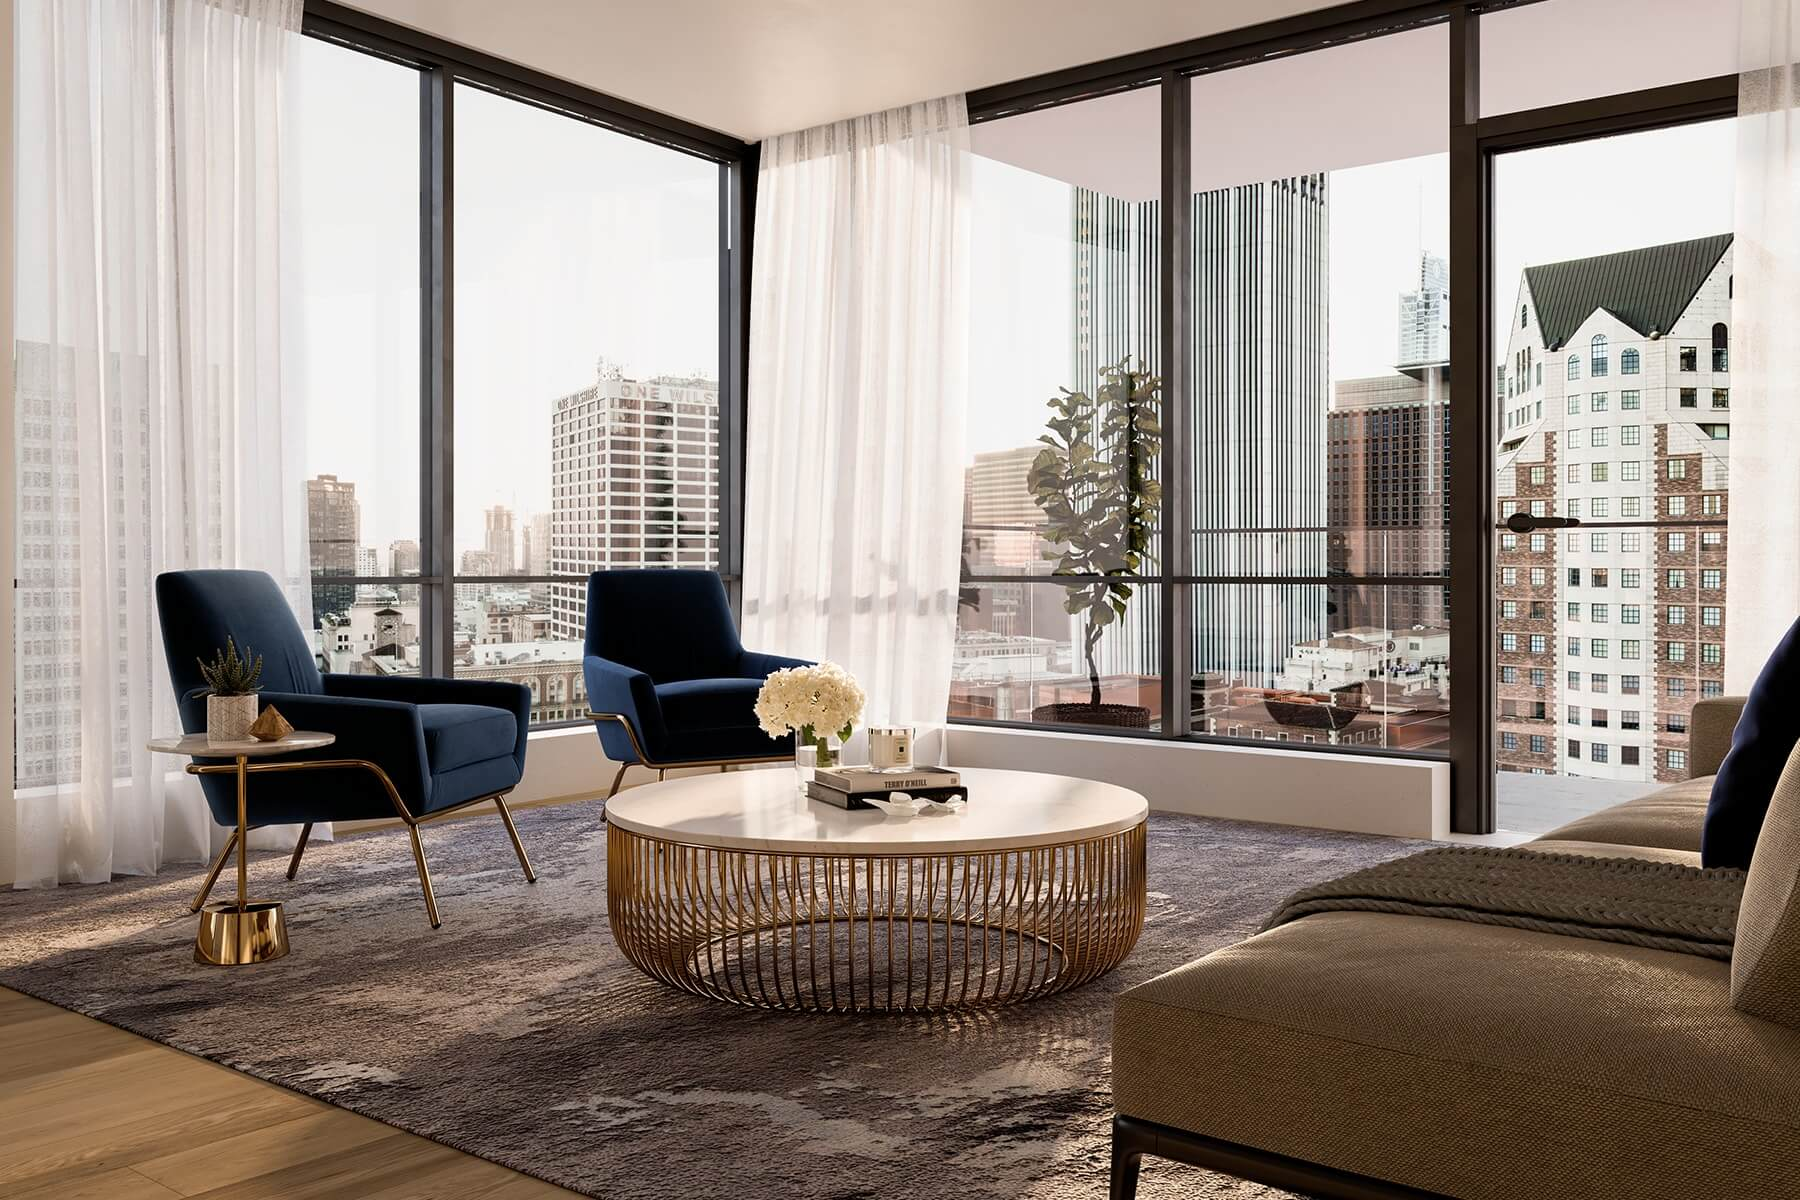 Apartments for Rent in Los Angeles CA | Park Fifth Tower